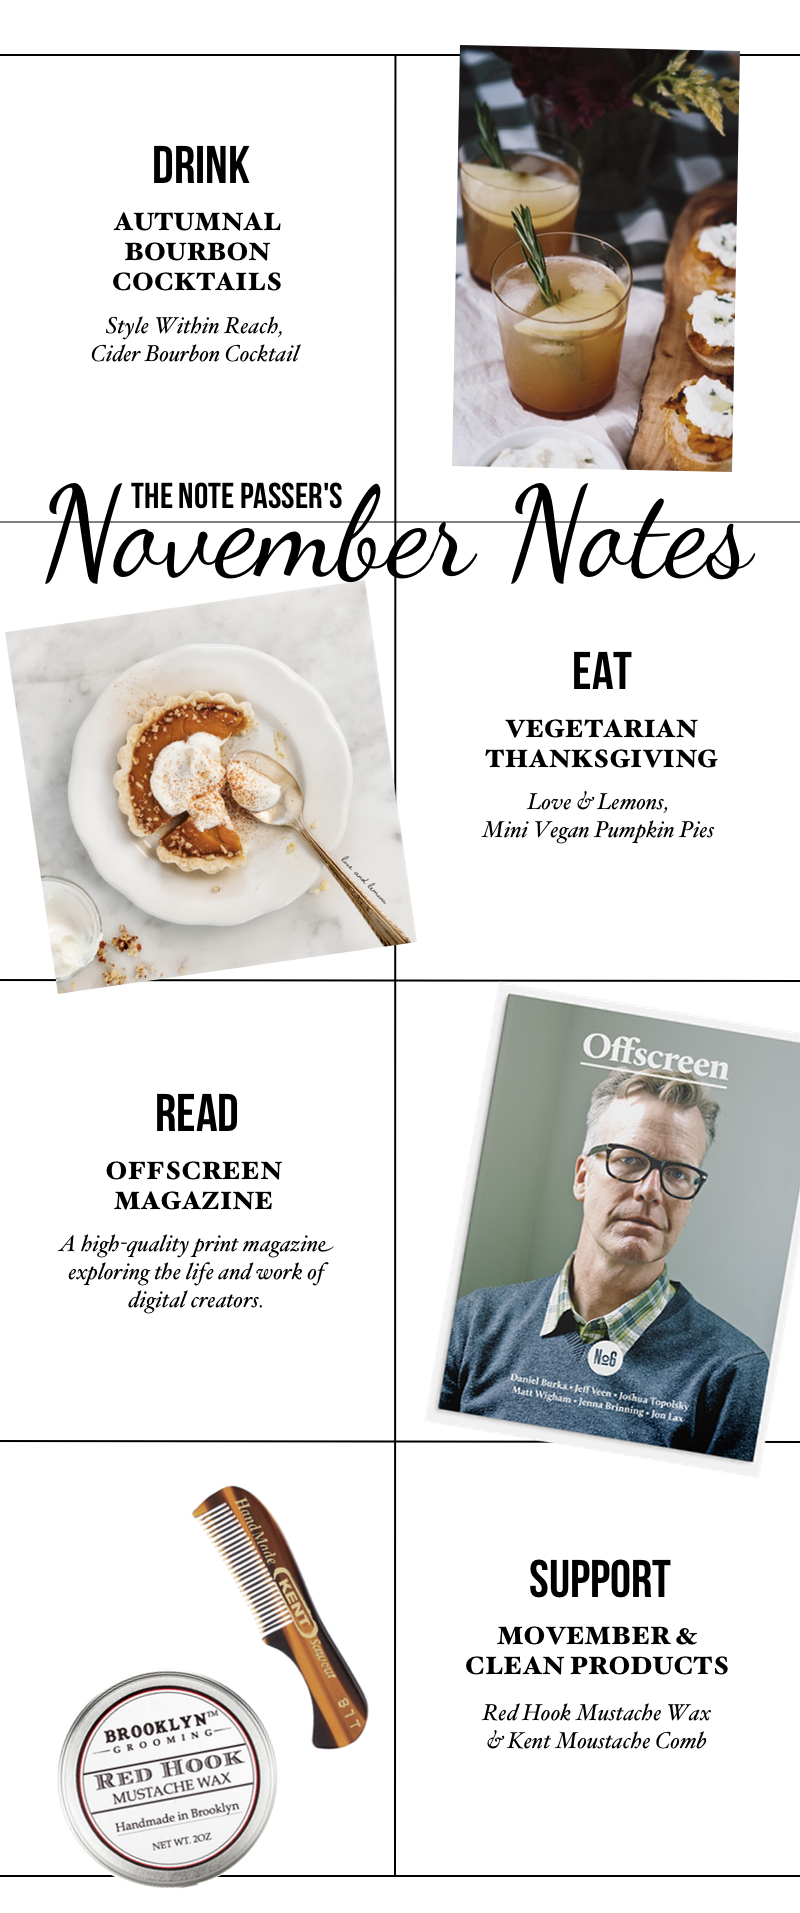 November Notes via thenotepasser.com